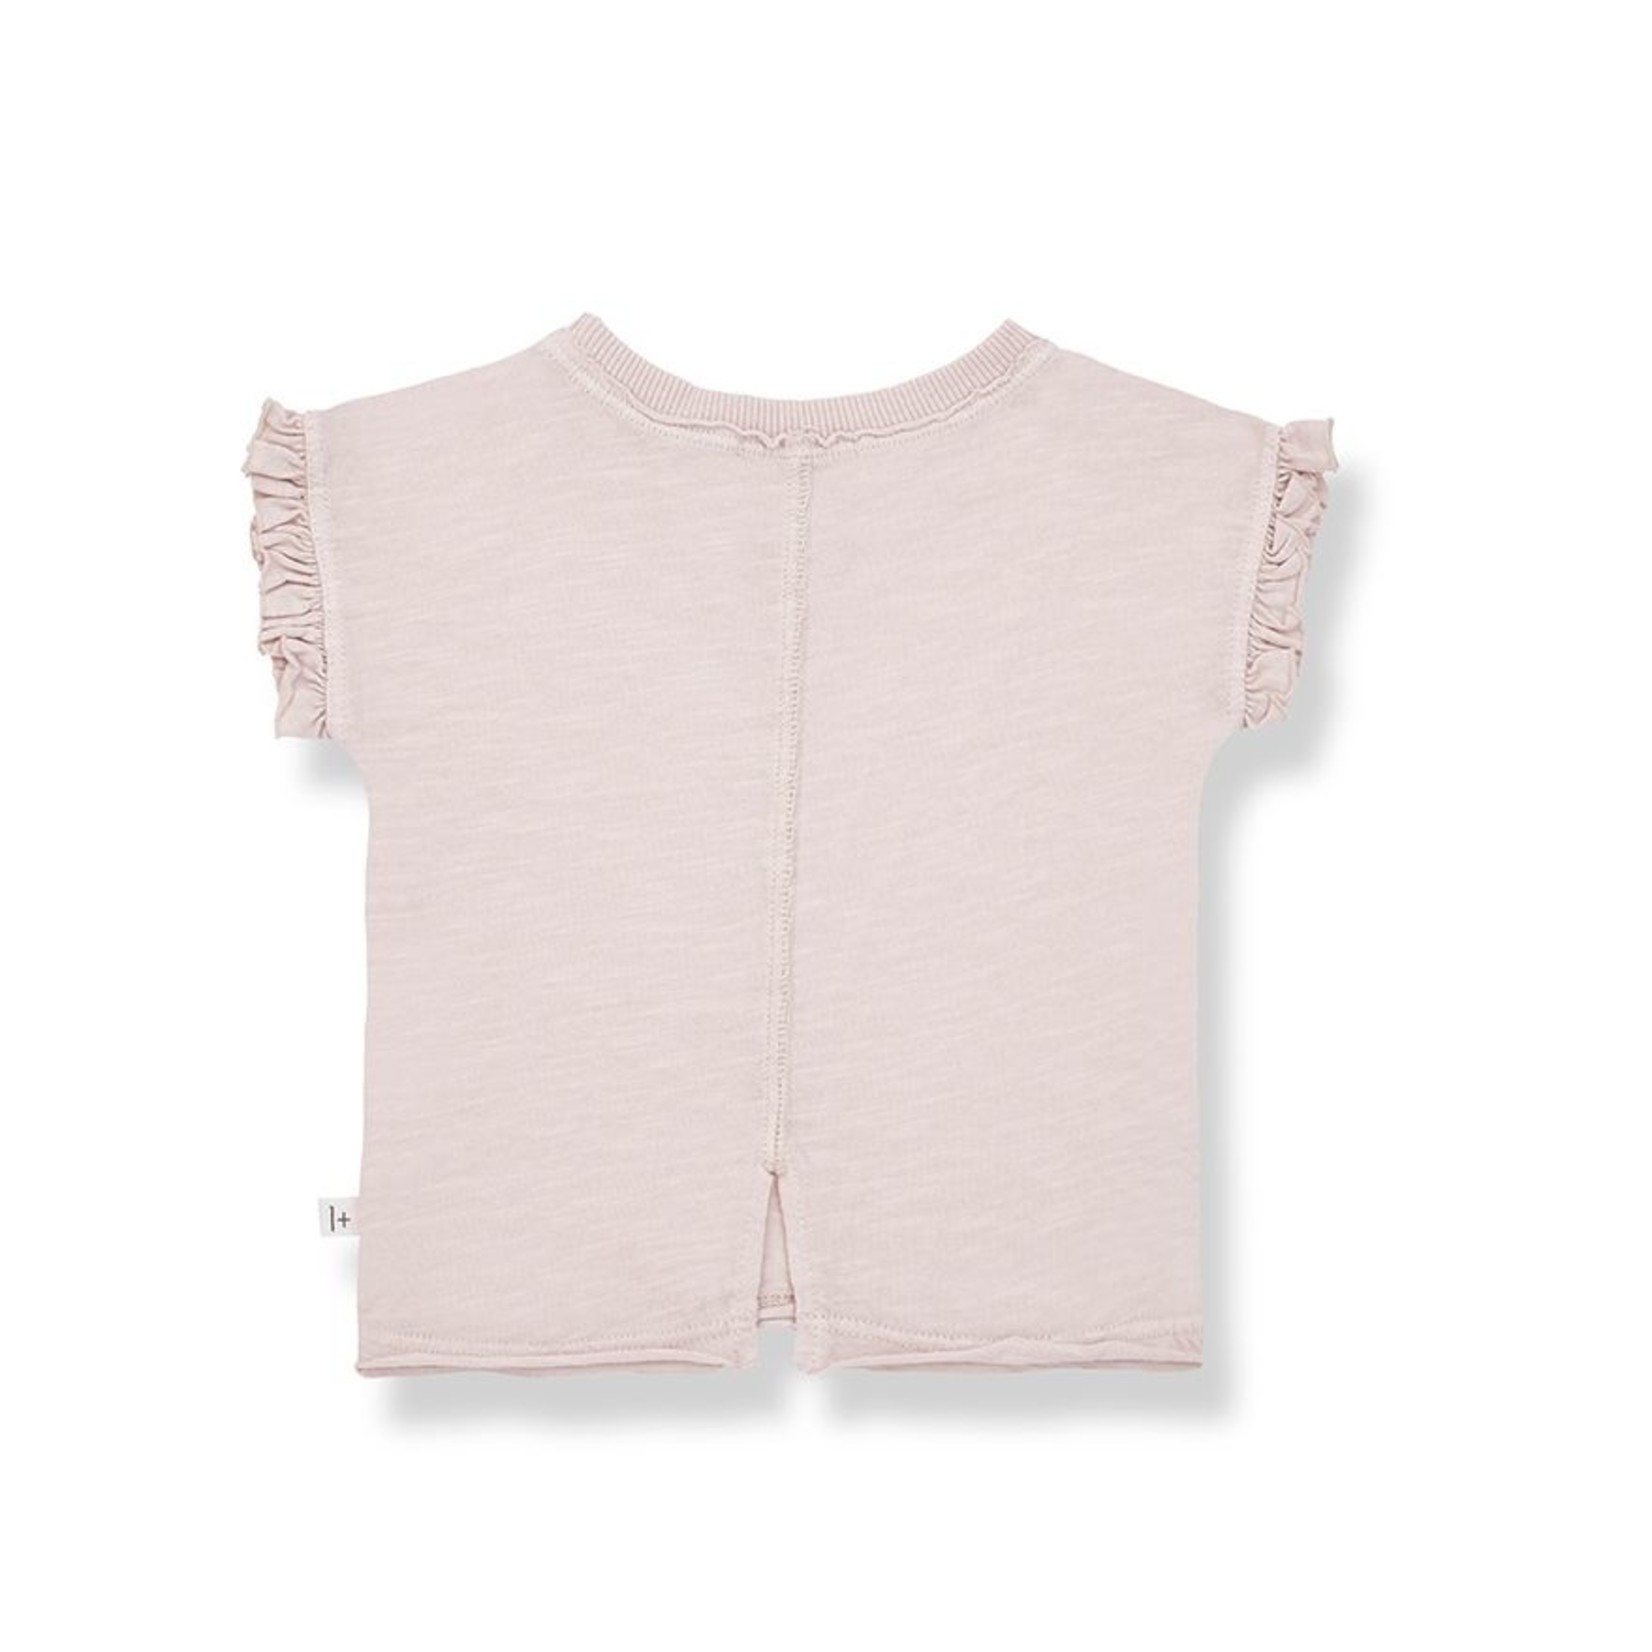 1+IN THE FAMILY 1 + IN THE FAMILY MIREIA short sleeve t-shirt